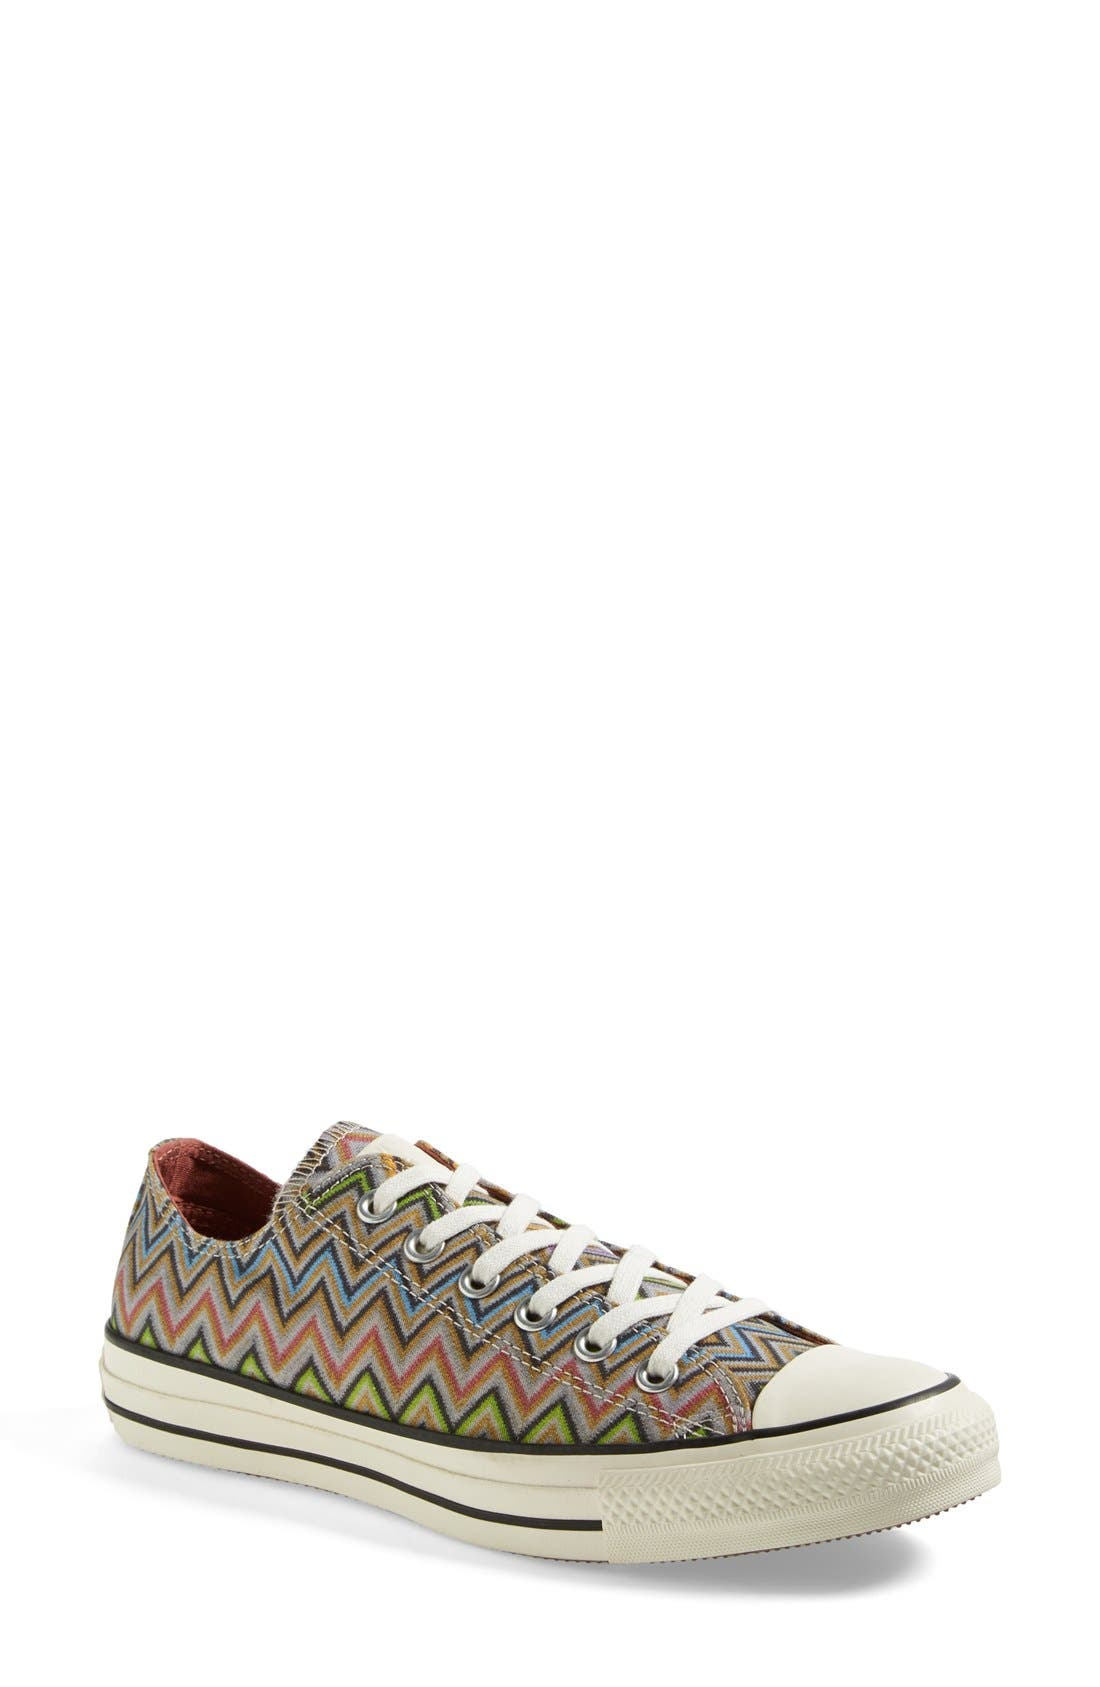 x Missoni Chuck Taylor<sup>®</sup> All Star<sup>®</sup> Low Sneaker,                         Main,                         color, Lucky Stone/ Egret